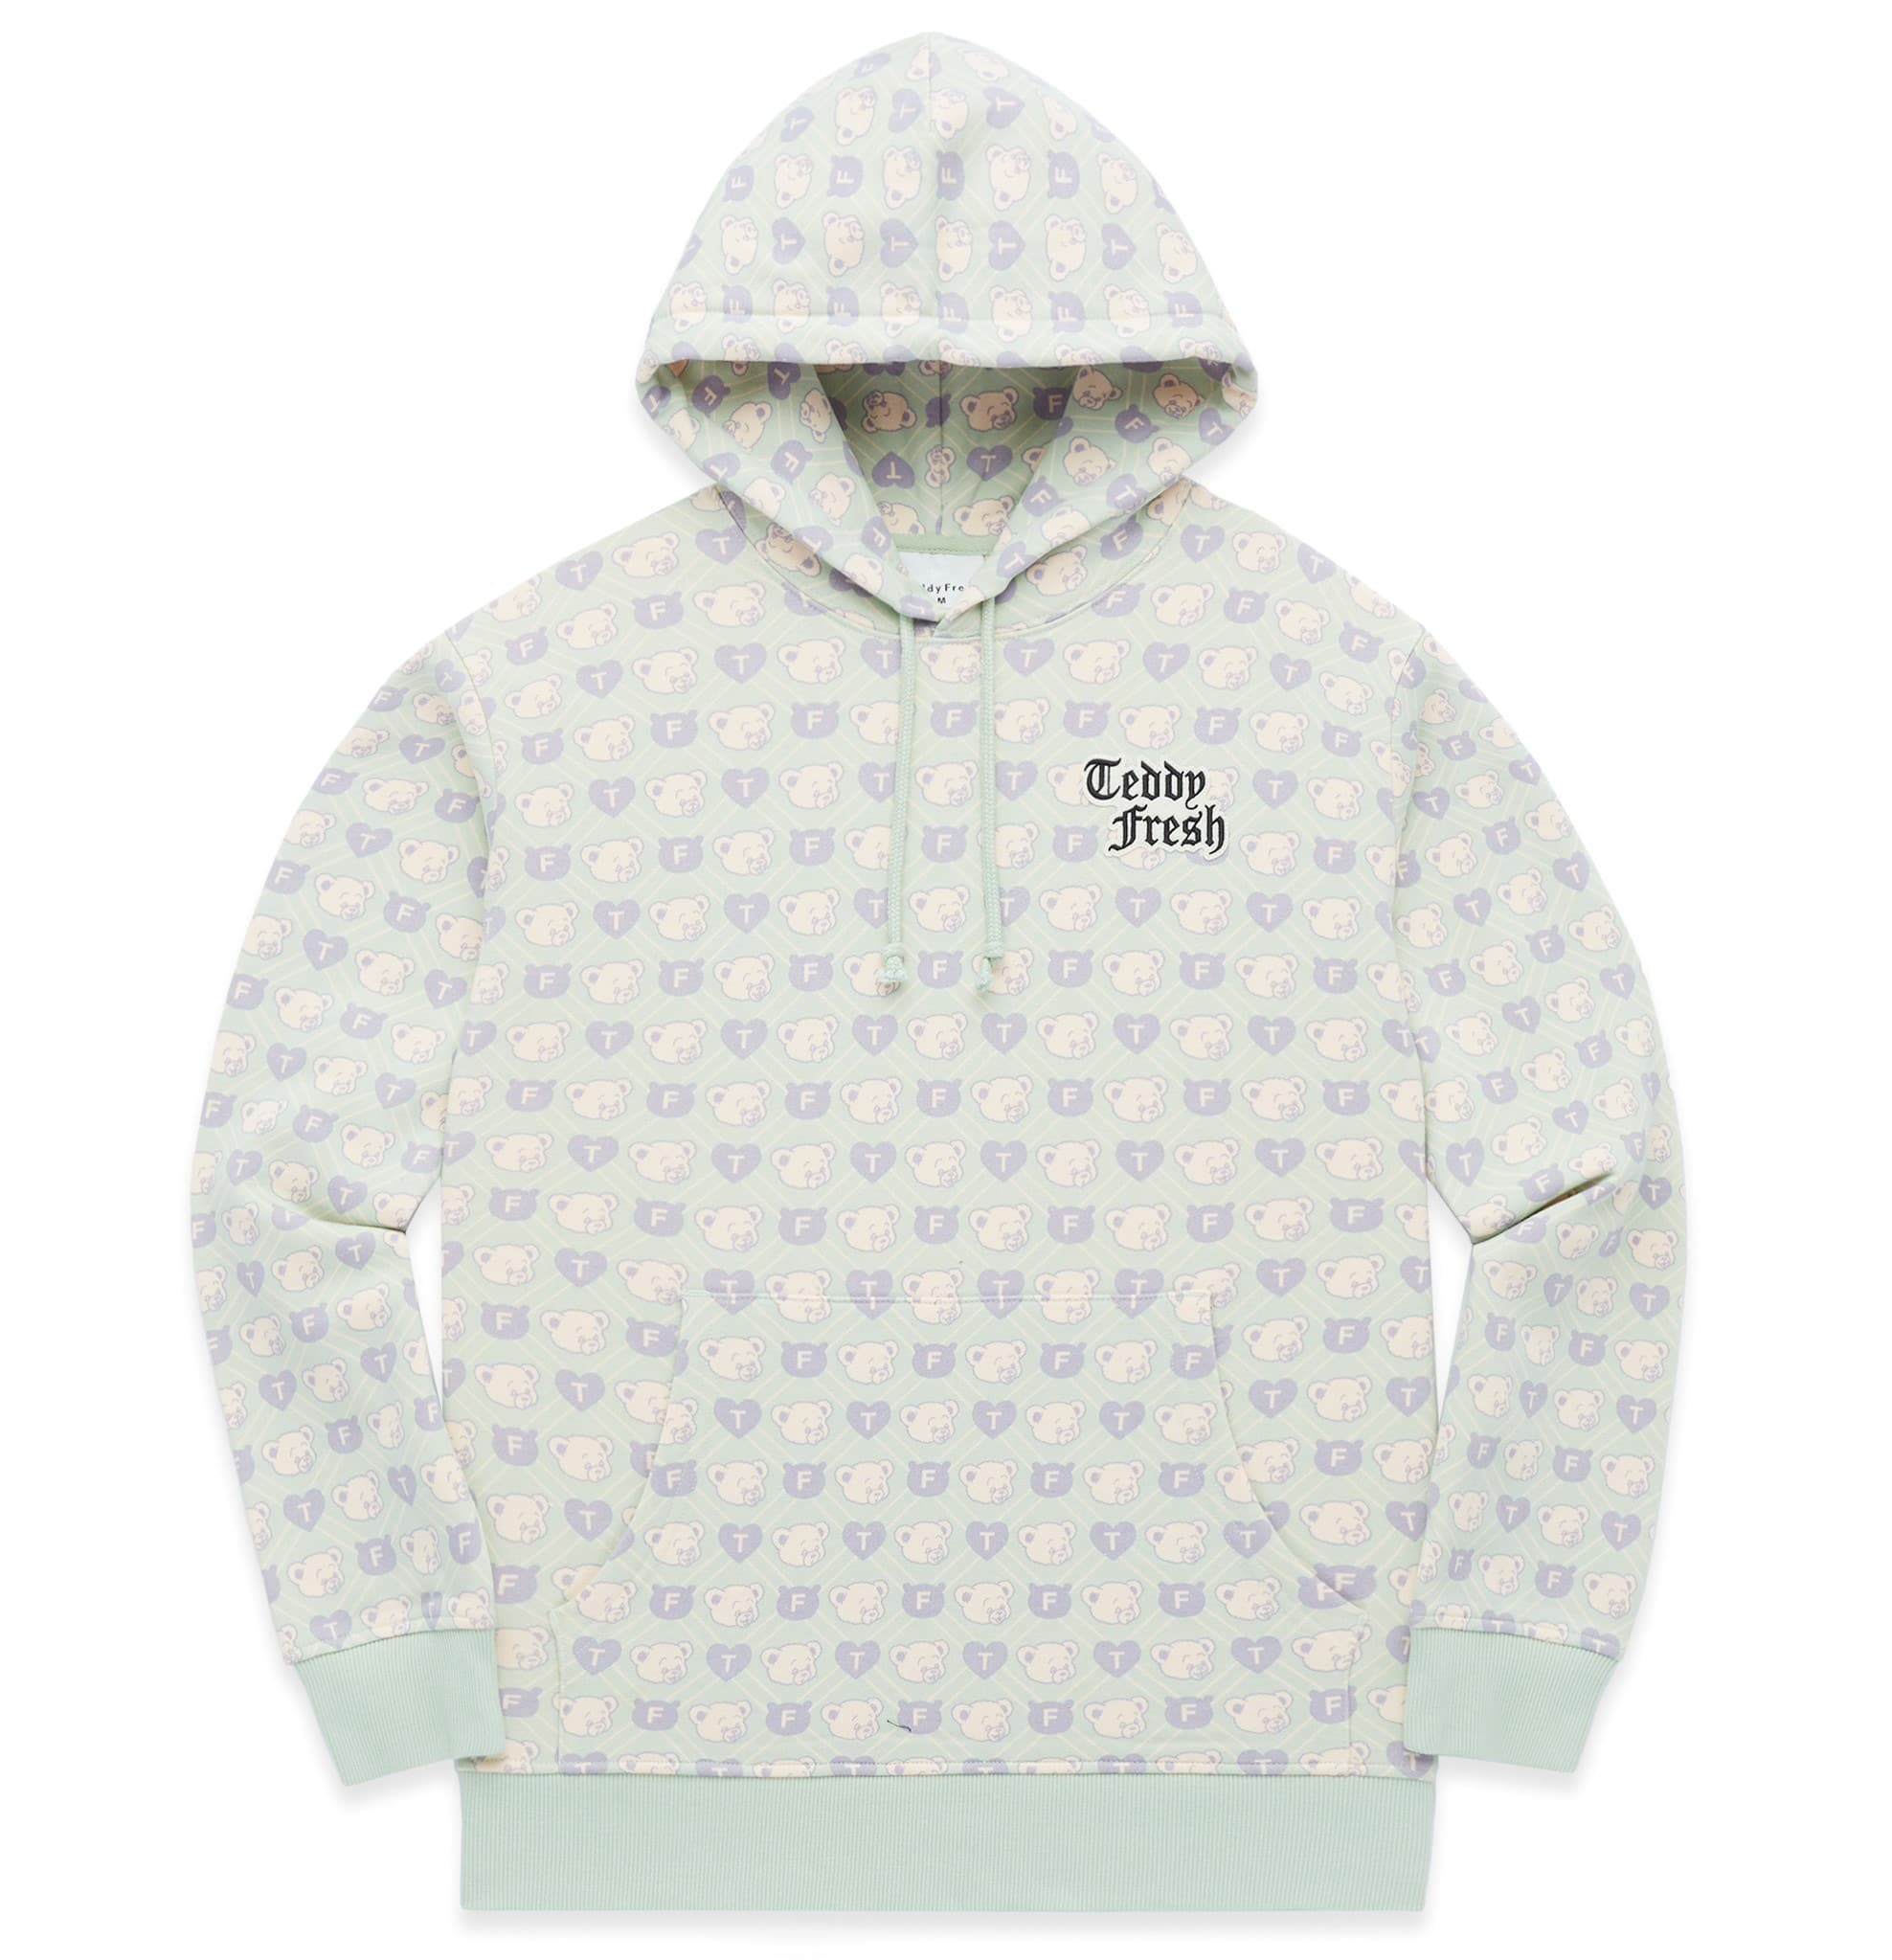 Teddy Fresh doubles down on pastel-colored outerwear for its February collection 9